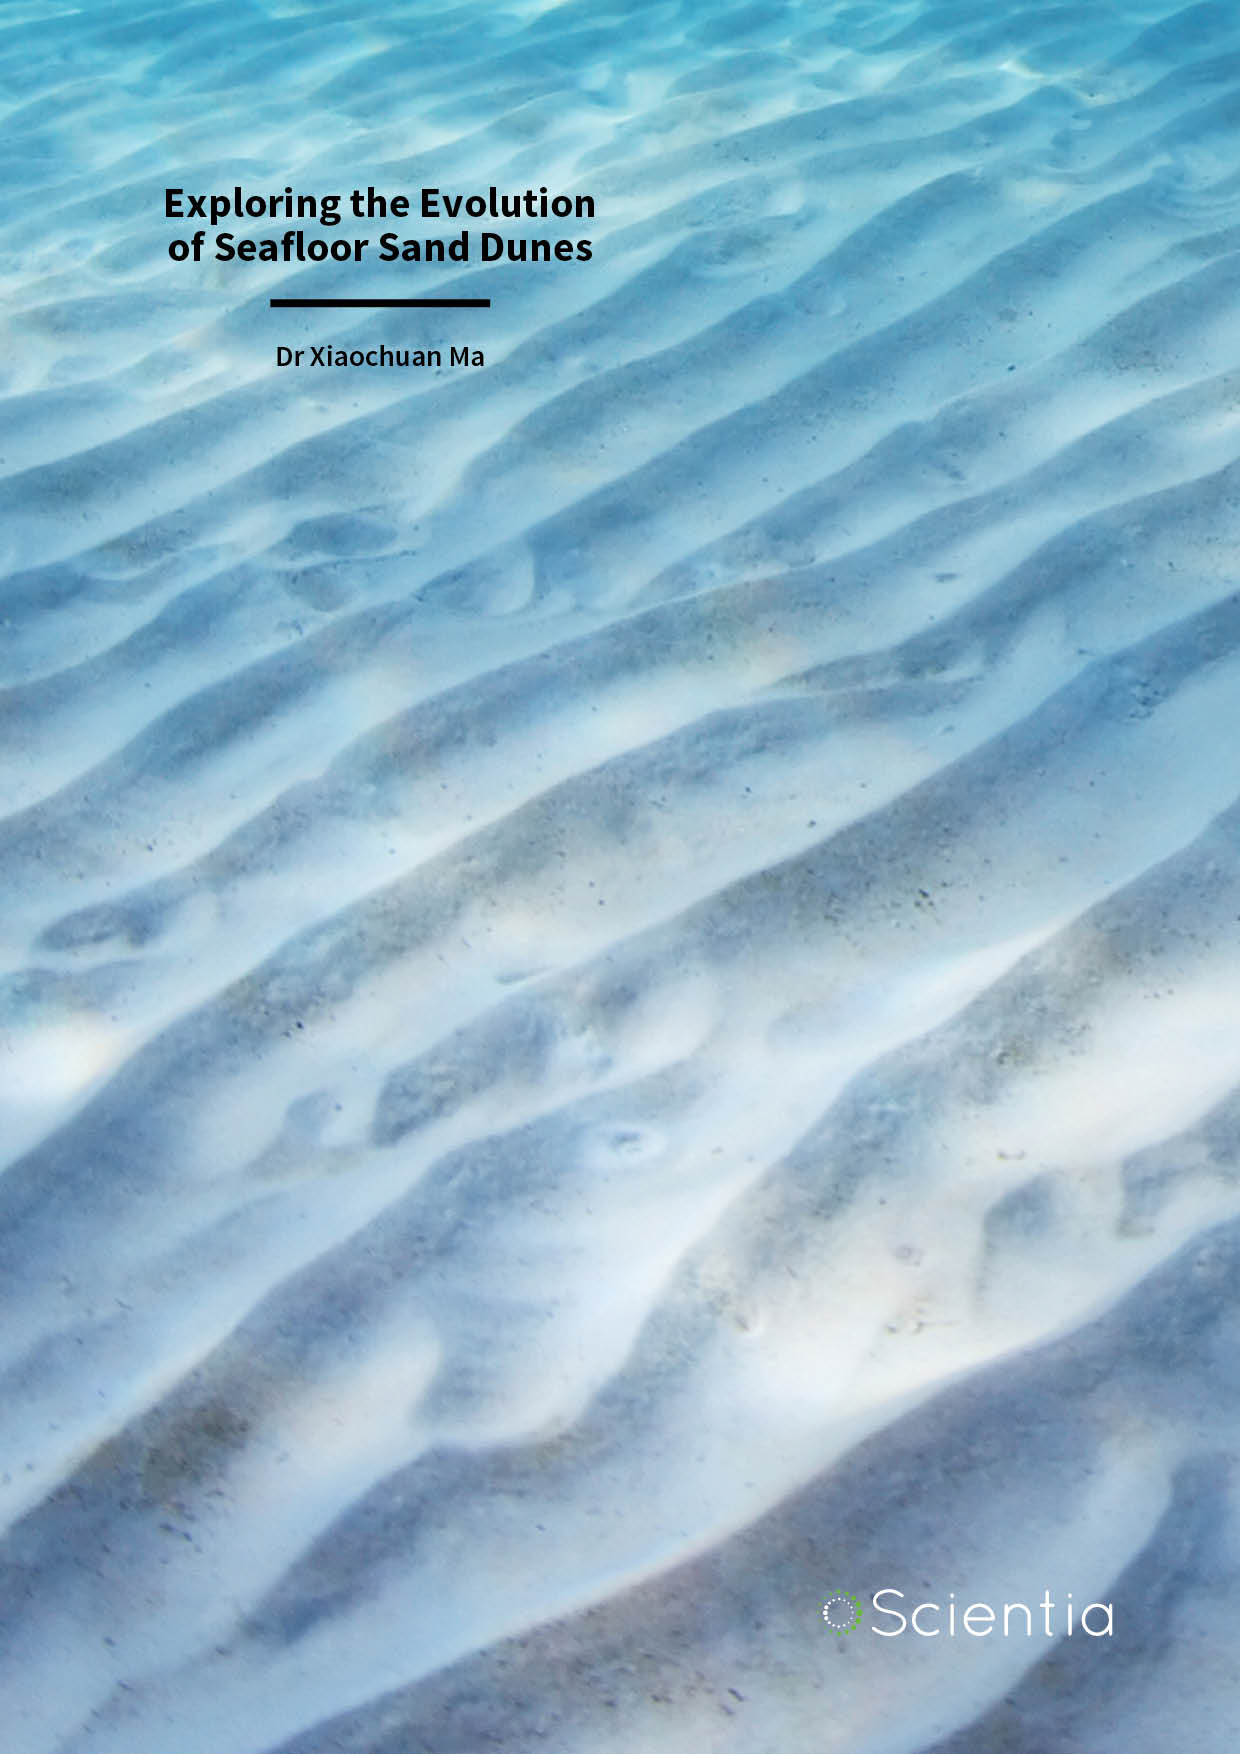 Dr Xiaochuan Ma – Exploring the Evolution of Seafloor Sand Dunes